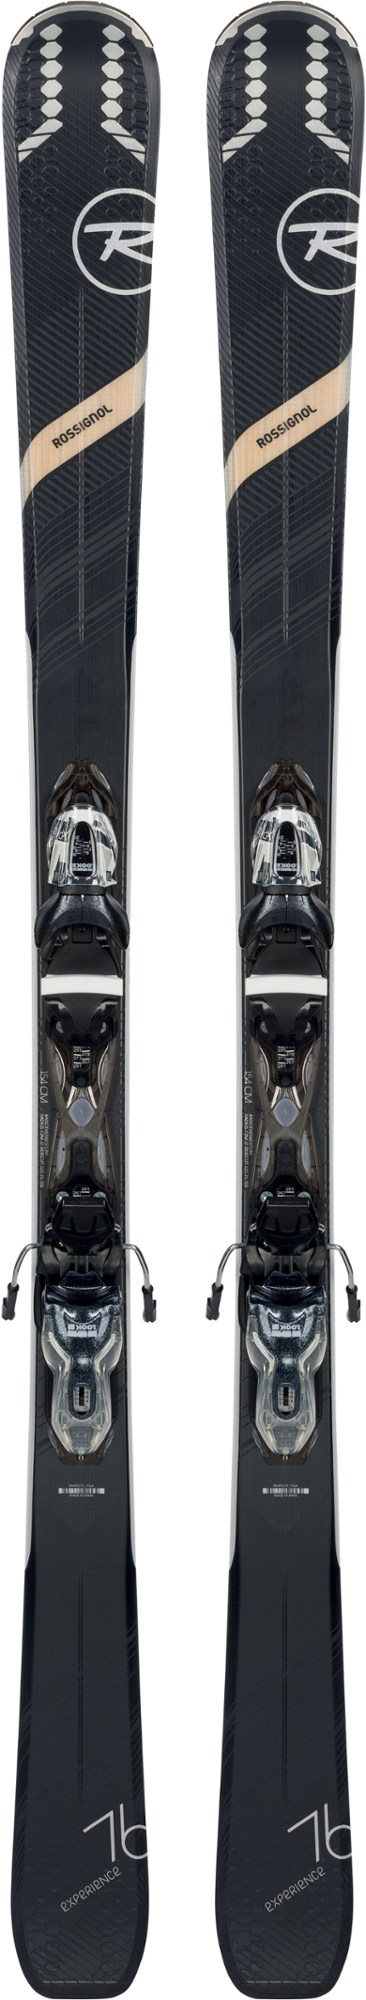 Rossignol Experience 76 Ci W Skis with Bindings - Women's - 2018/2019